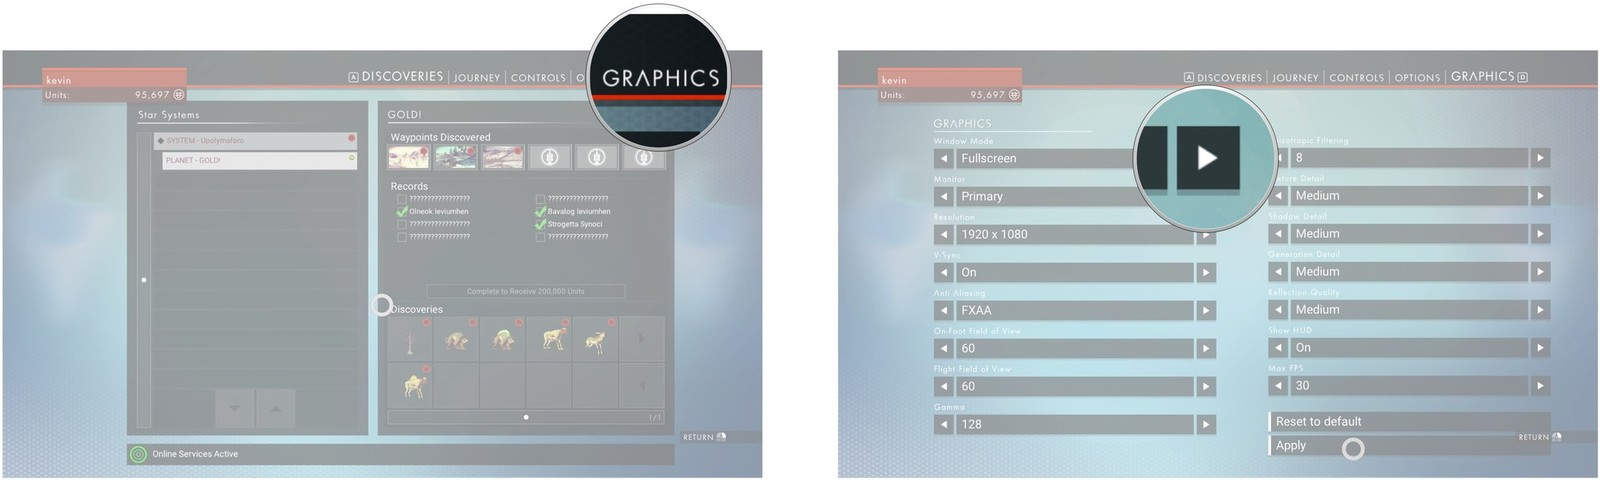 Click Graphics. Change the Window Mode to Borderless.